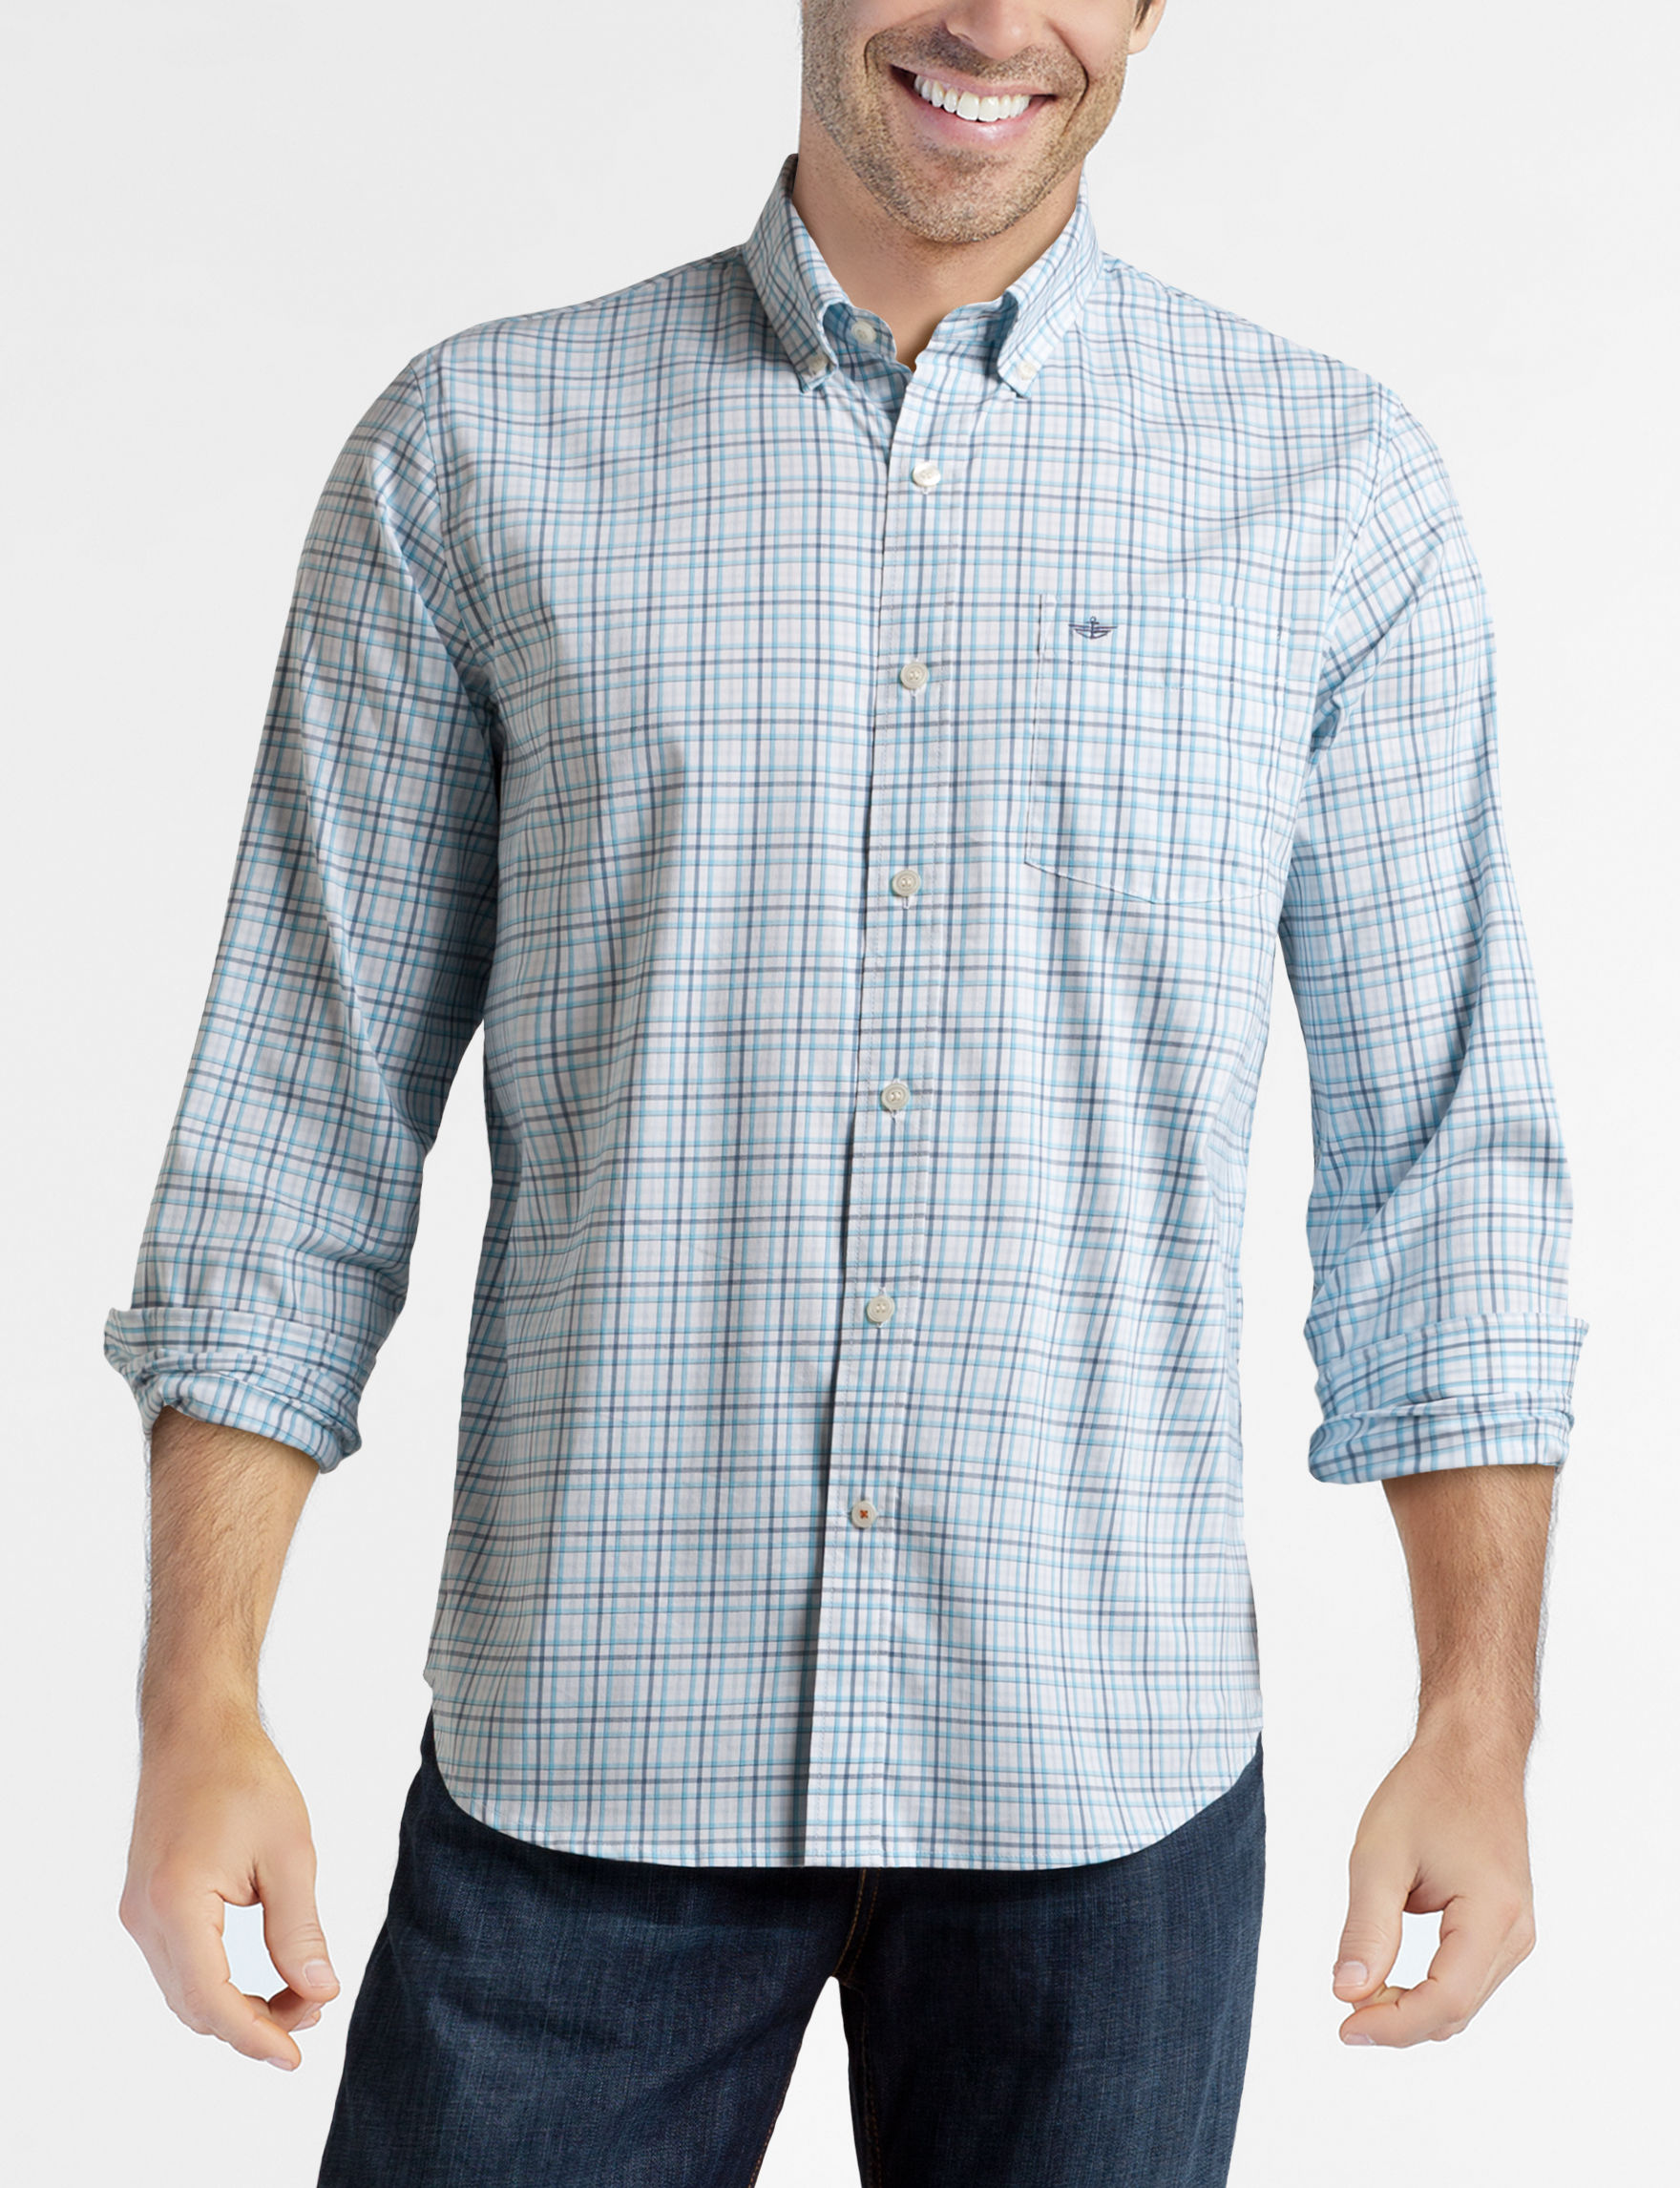 Dockers Blue Plaid Casual Button Down Shirts